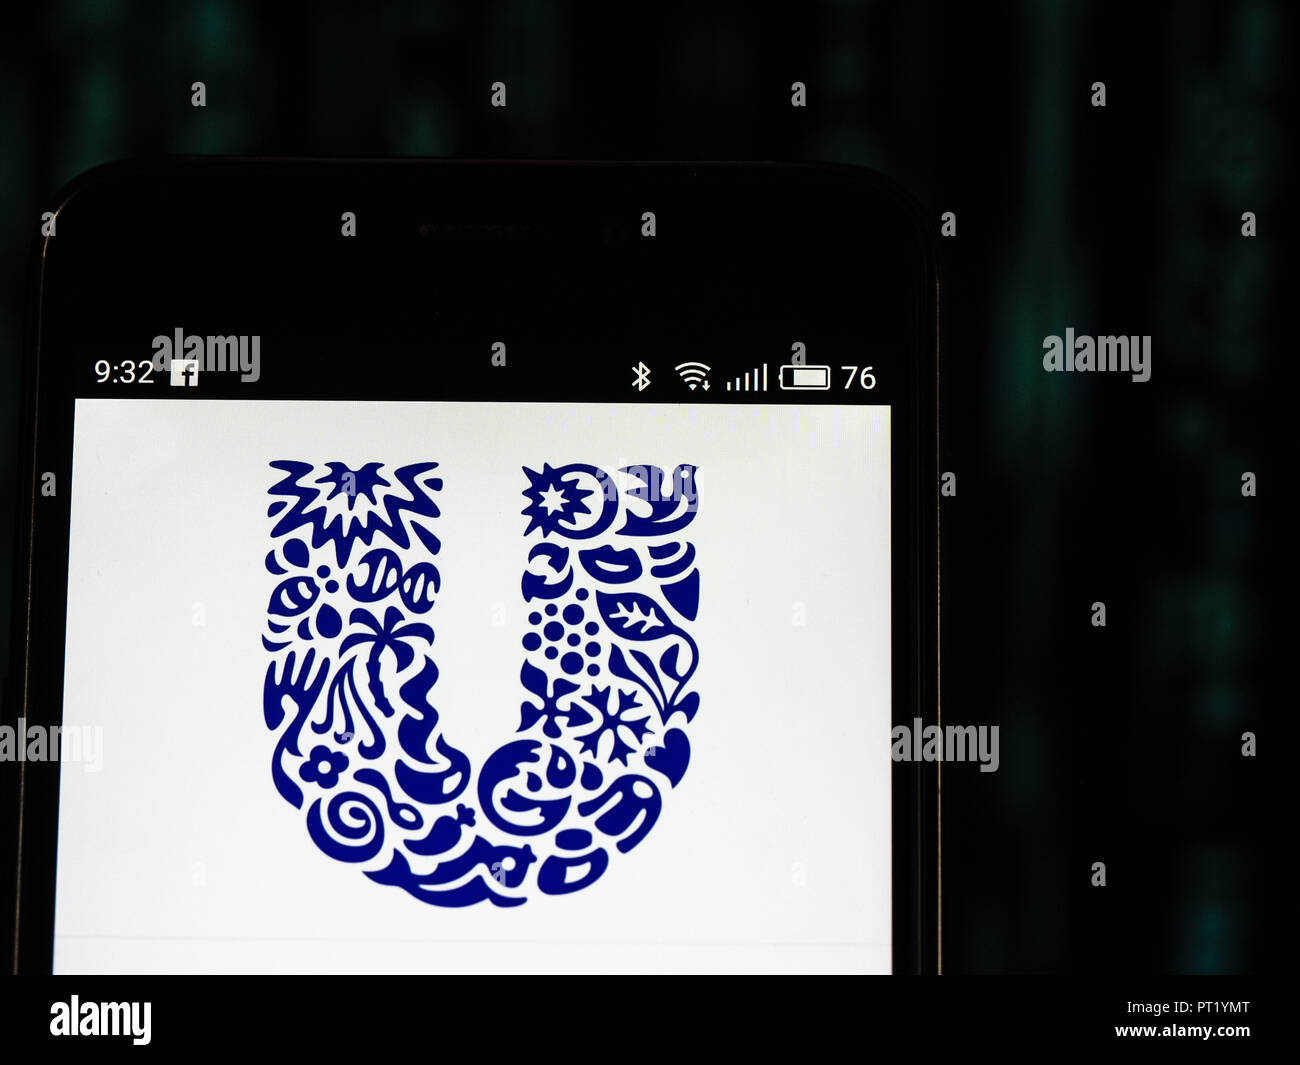 September 27, 2018 - Kiev, Ukraine - Unilever logo seen displayed on smart phone. Unilever is a British-Dutch transnational consumer goods company co-headquartered in London, United Kingdom and Rotterdam, Netherlands. Its products include food and beverages, cleaning agents and personal care products. (Credit Image: © Igor Golovniov/SOPA Images via ZUMA Wire) - Stock Image